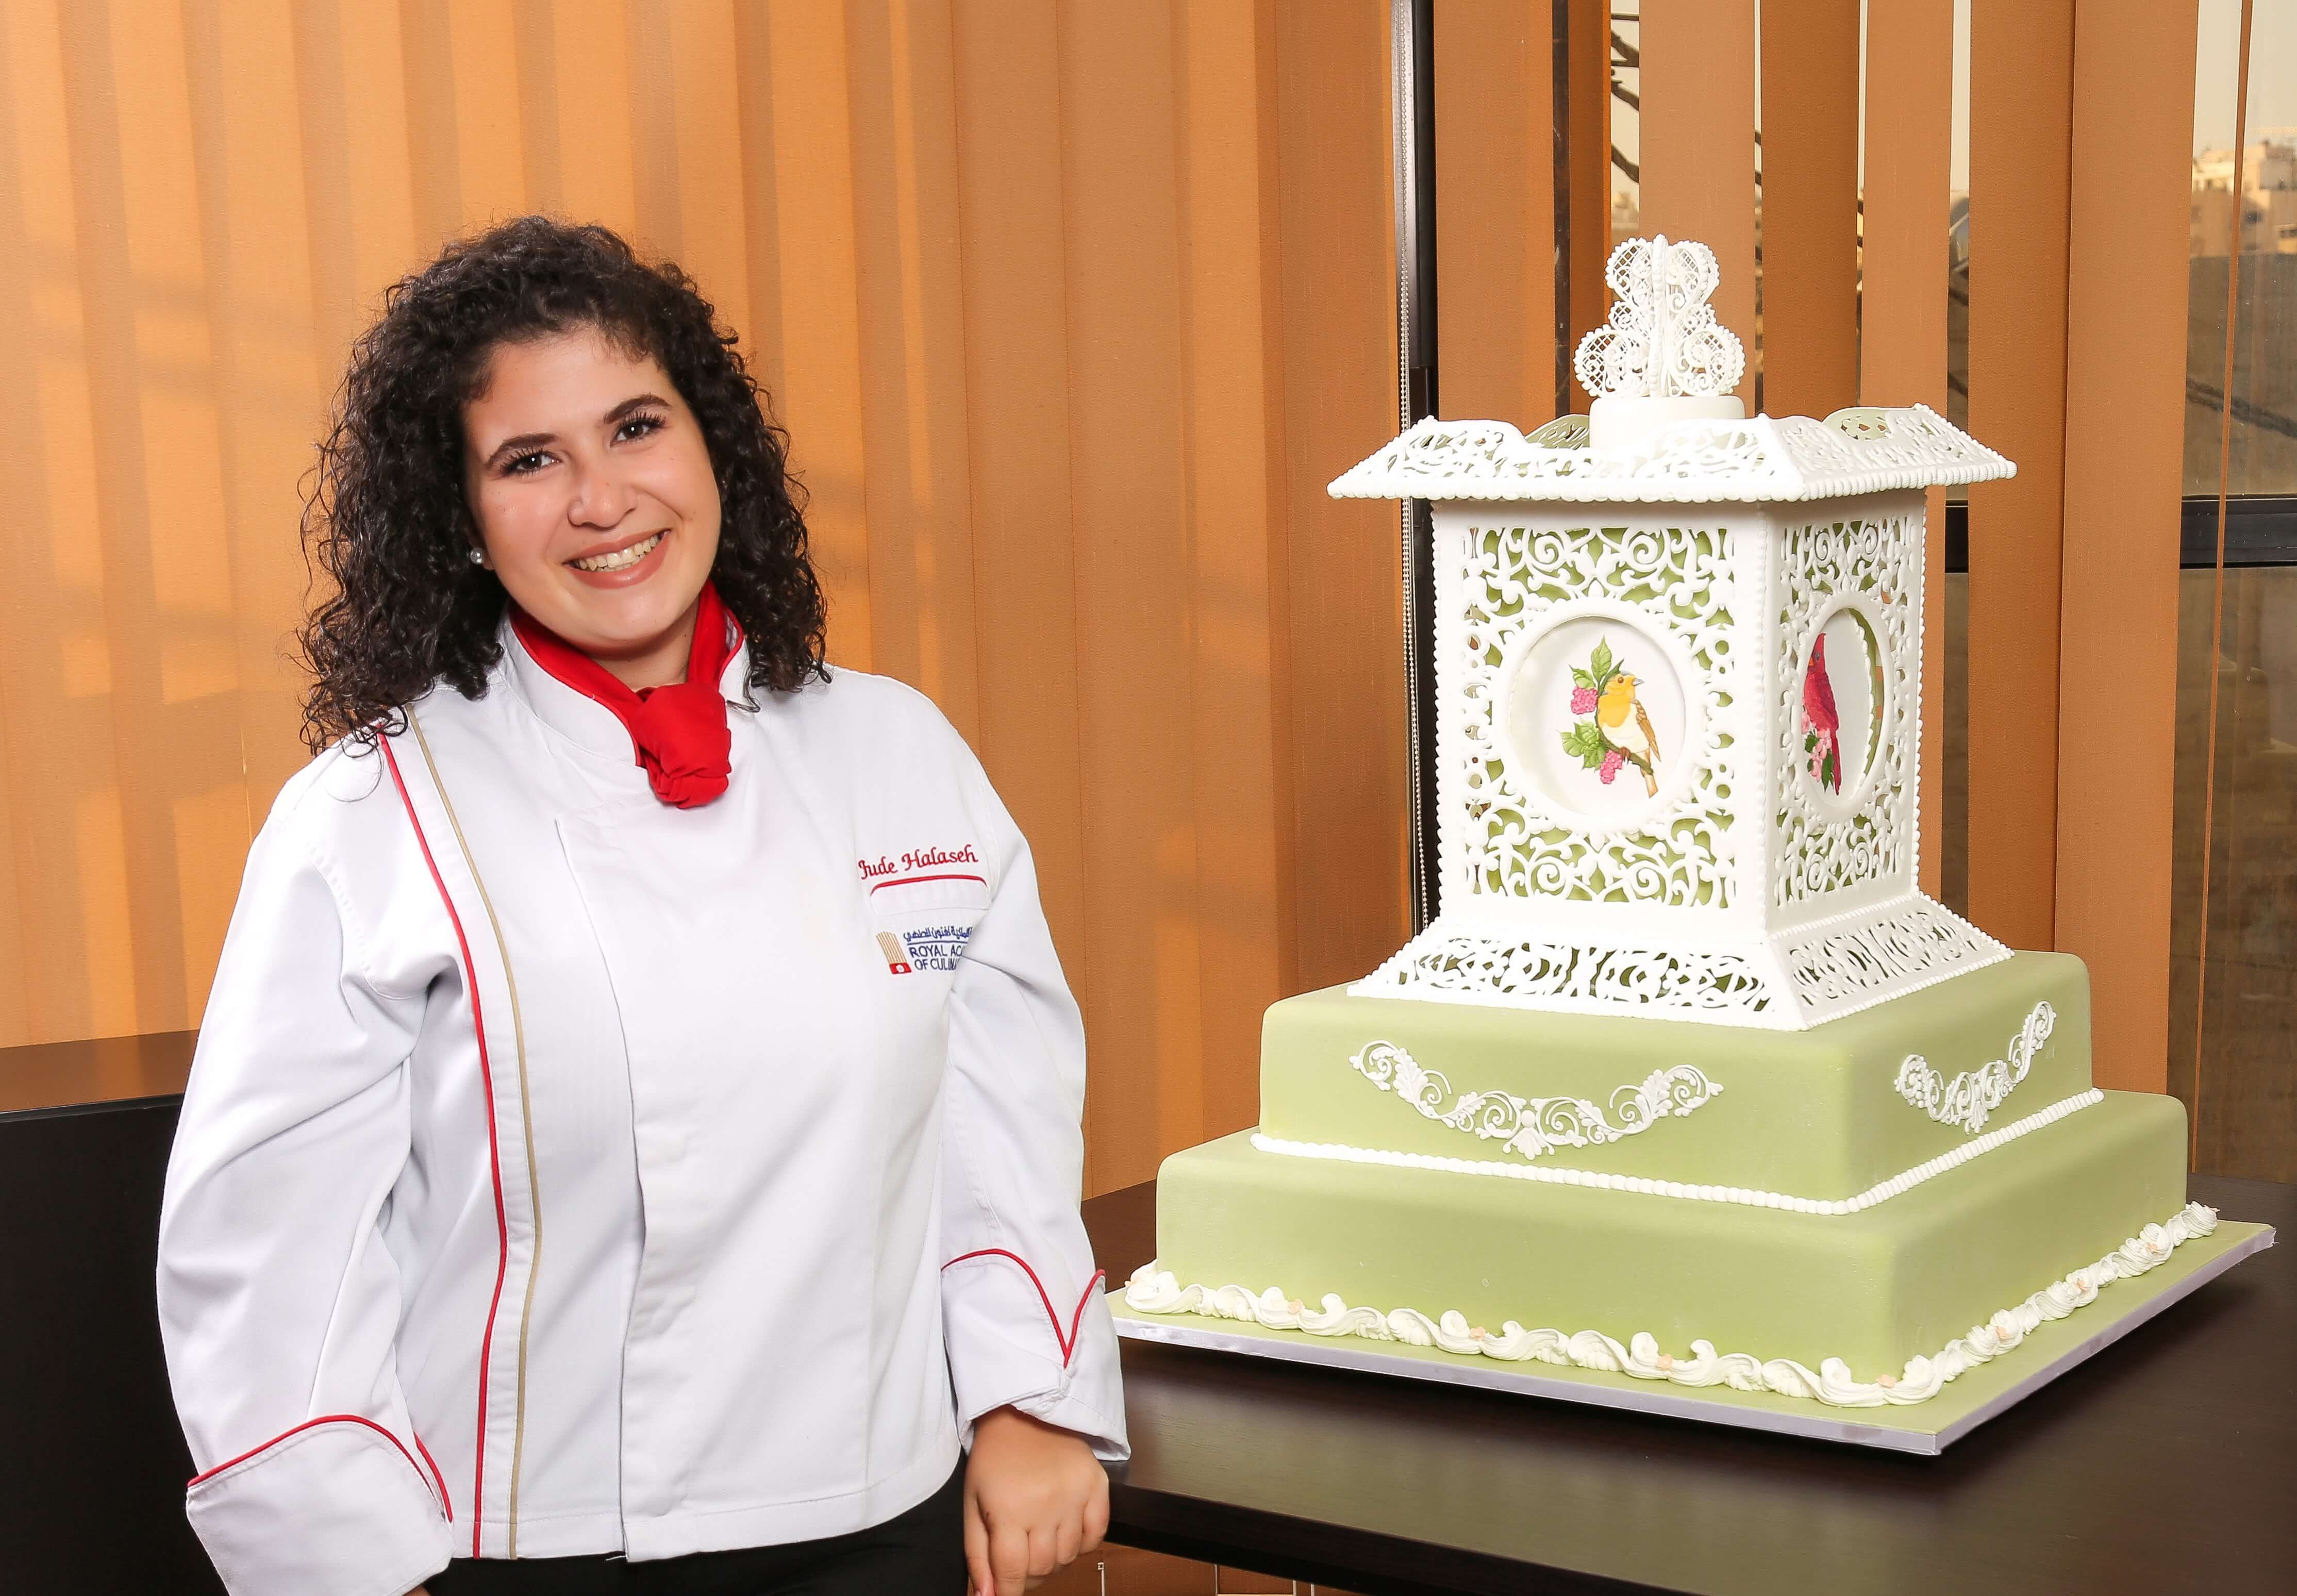 """RACA student has been awarded as """"Highly Commended 4th place"""" in the Cake International Virtual Competition"""